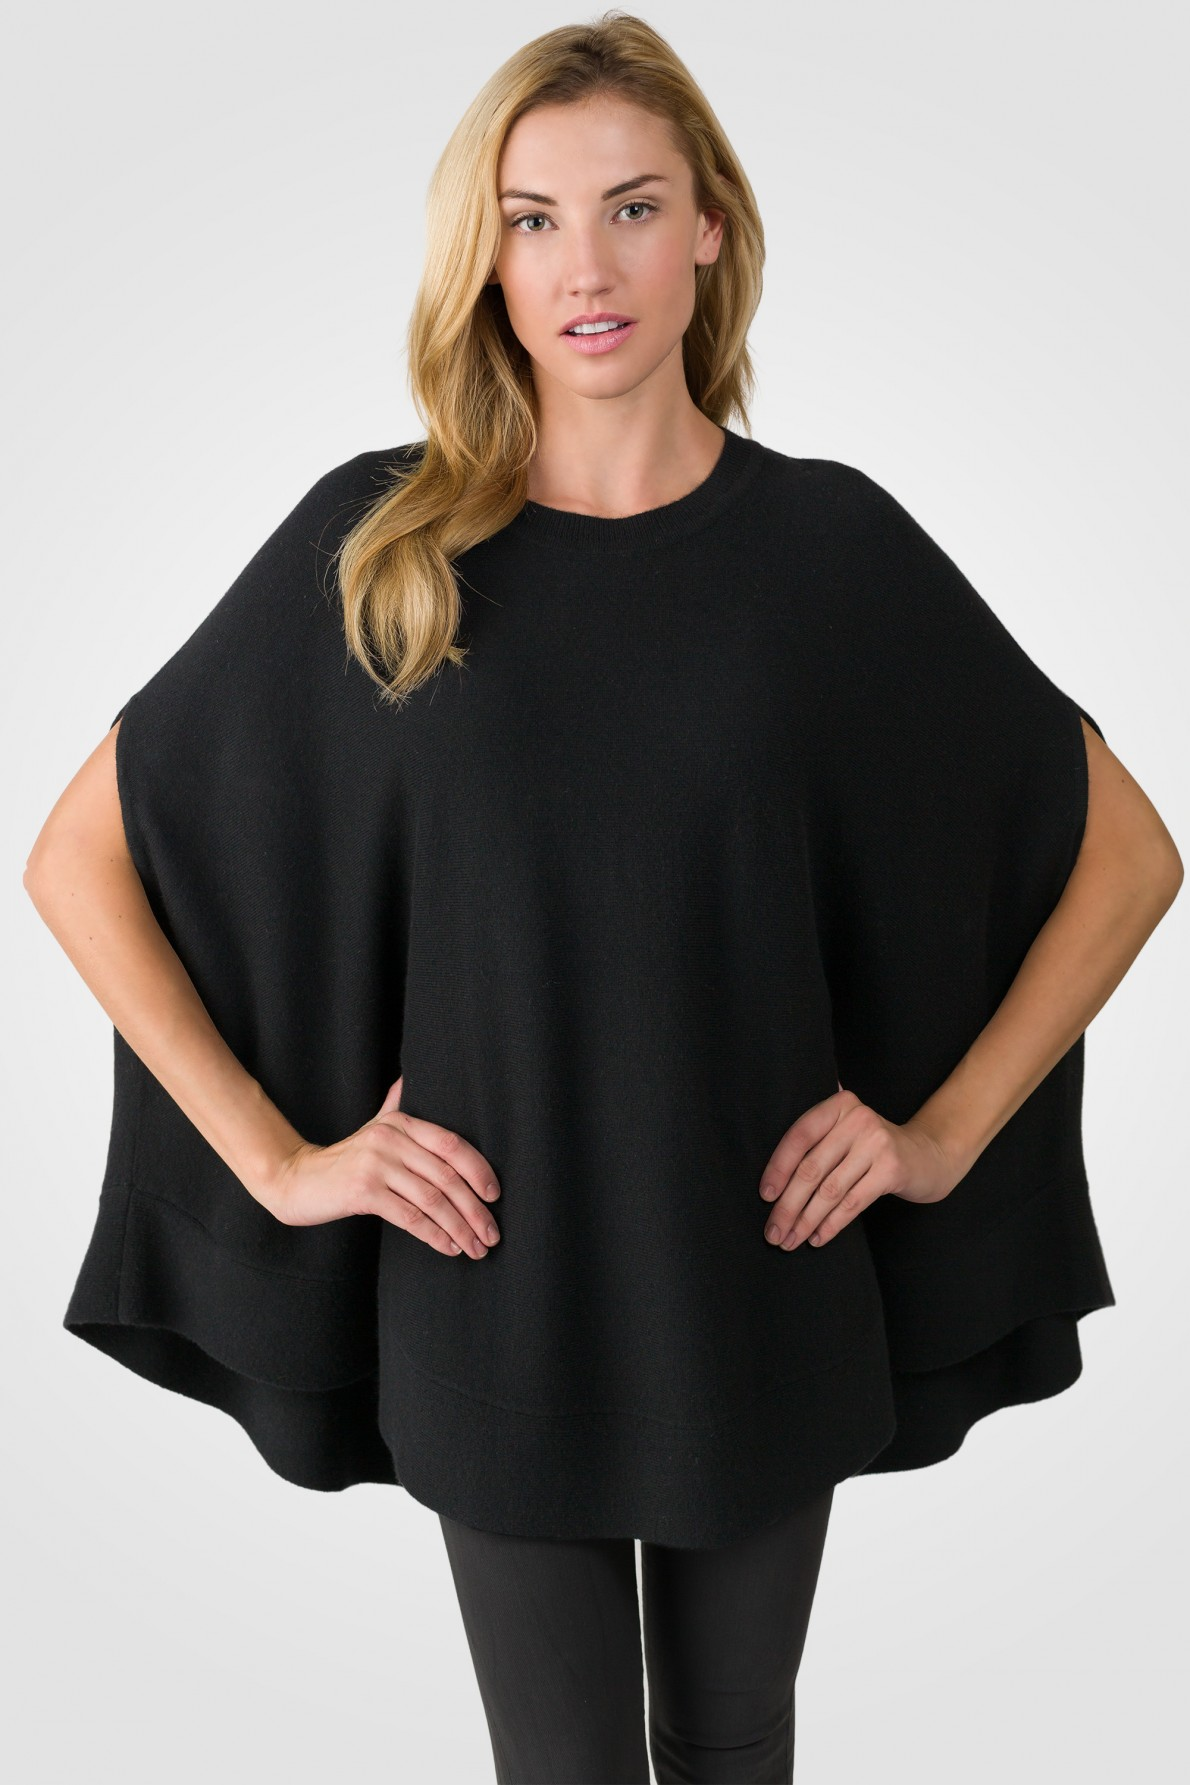 black cashmere oversized laid-back poncho sweater front view alt QHITHIN